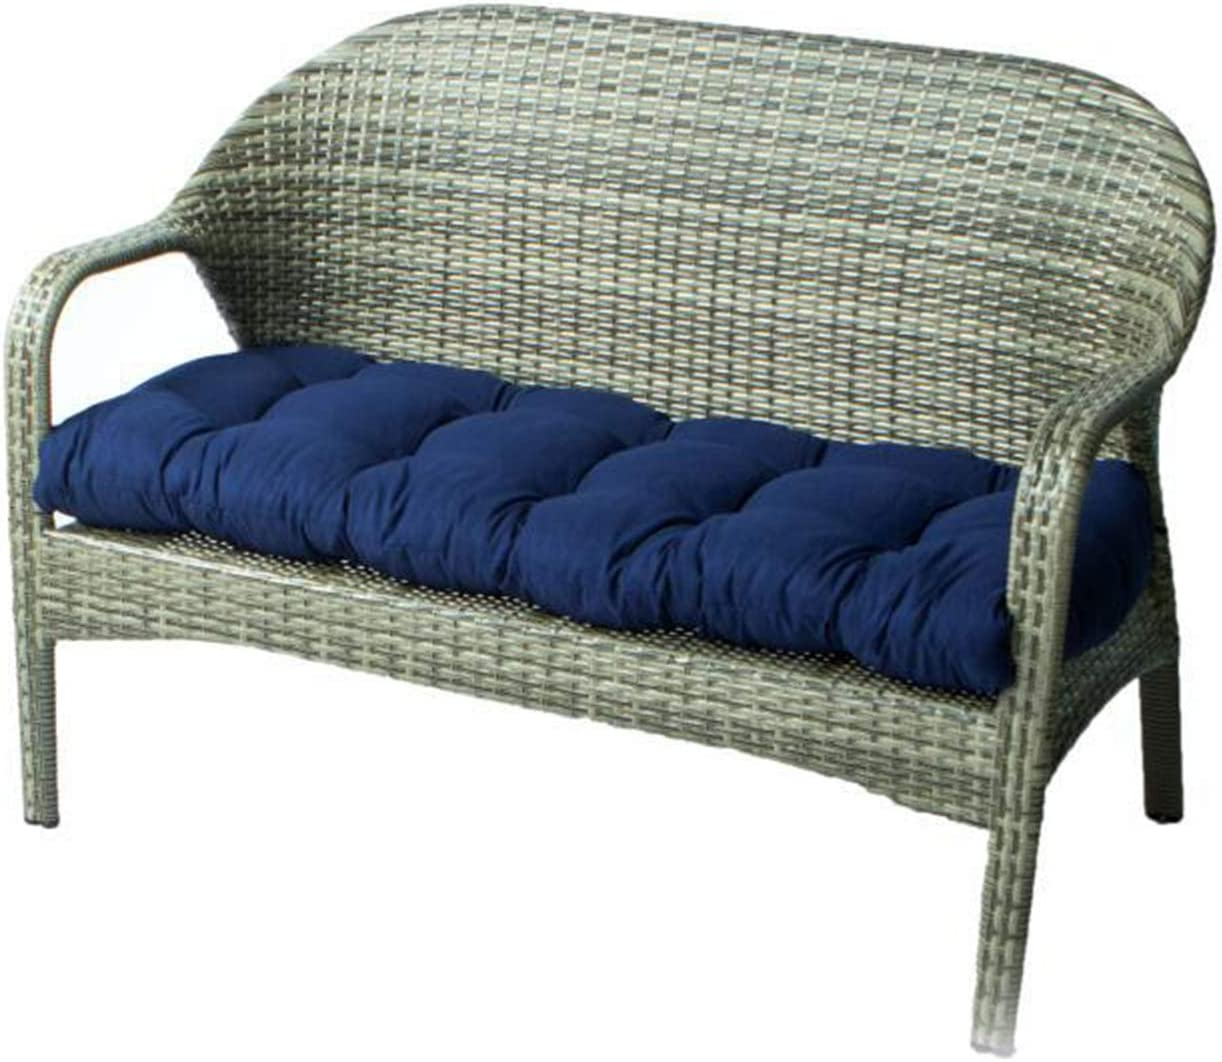 LEFUYAN Soft Bench Cushion with Fixed Tie Long Rectangular Swing Cushion for Lounger Garden Furniture Lounger 130X50cm Solid